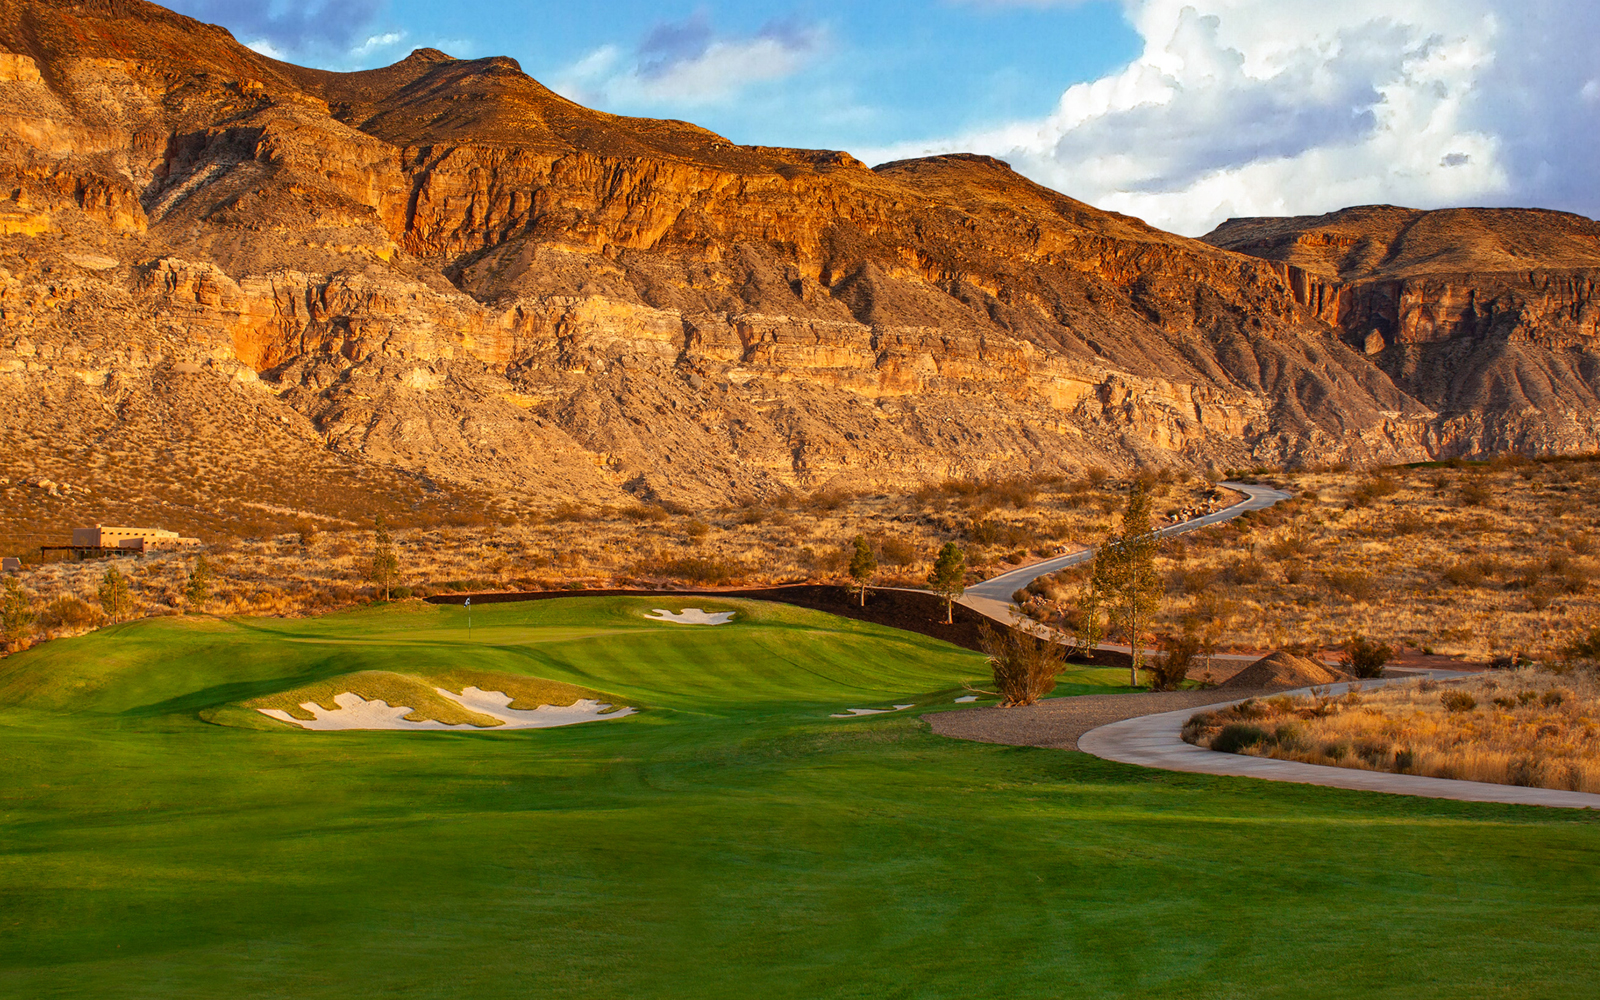 Copper Rock golf course in Utah